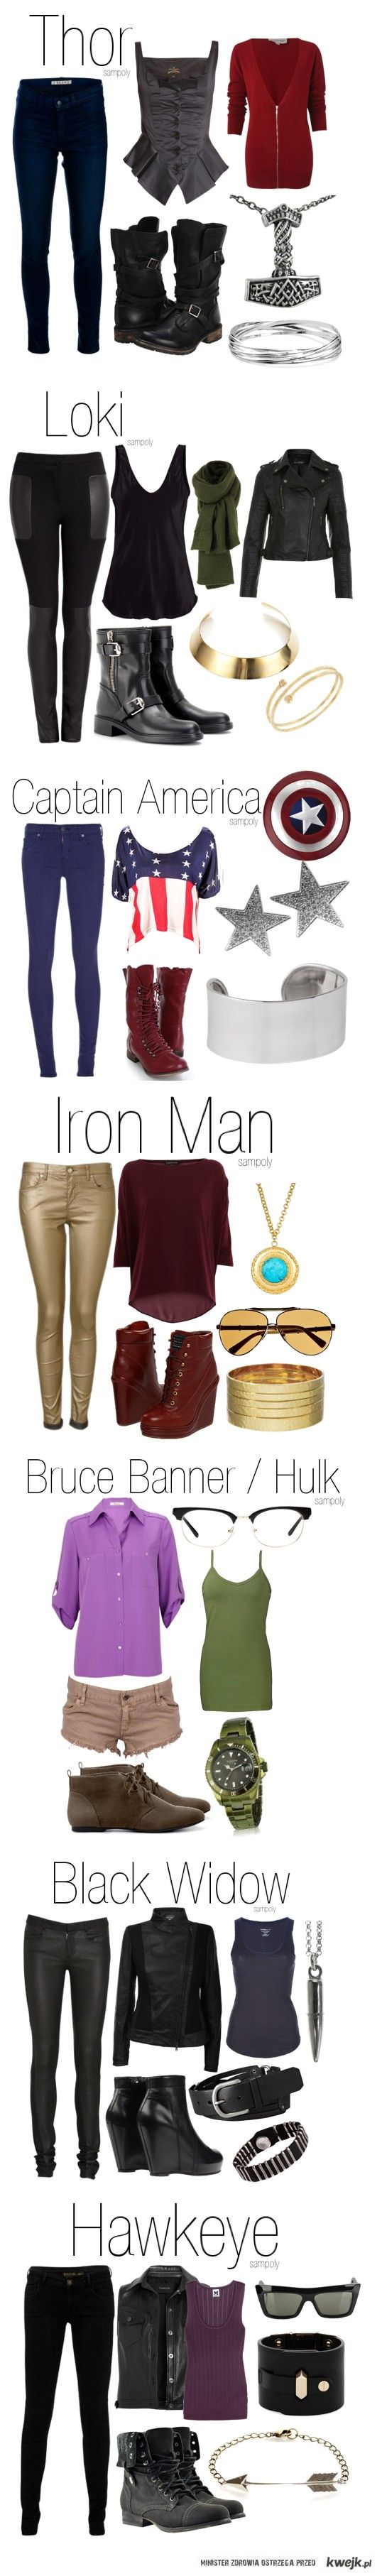 The Avengers ideas - you never know when you might need to dress up like a female superhero